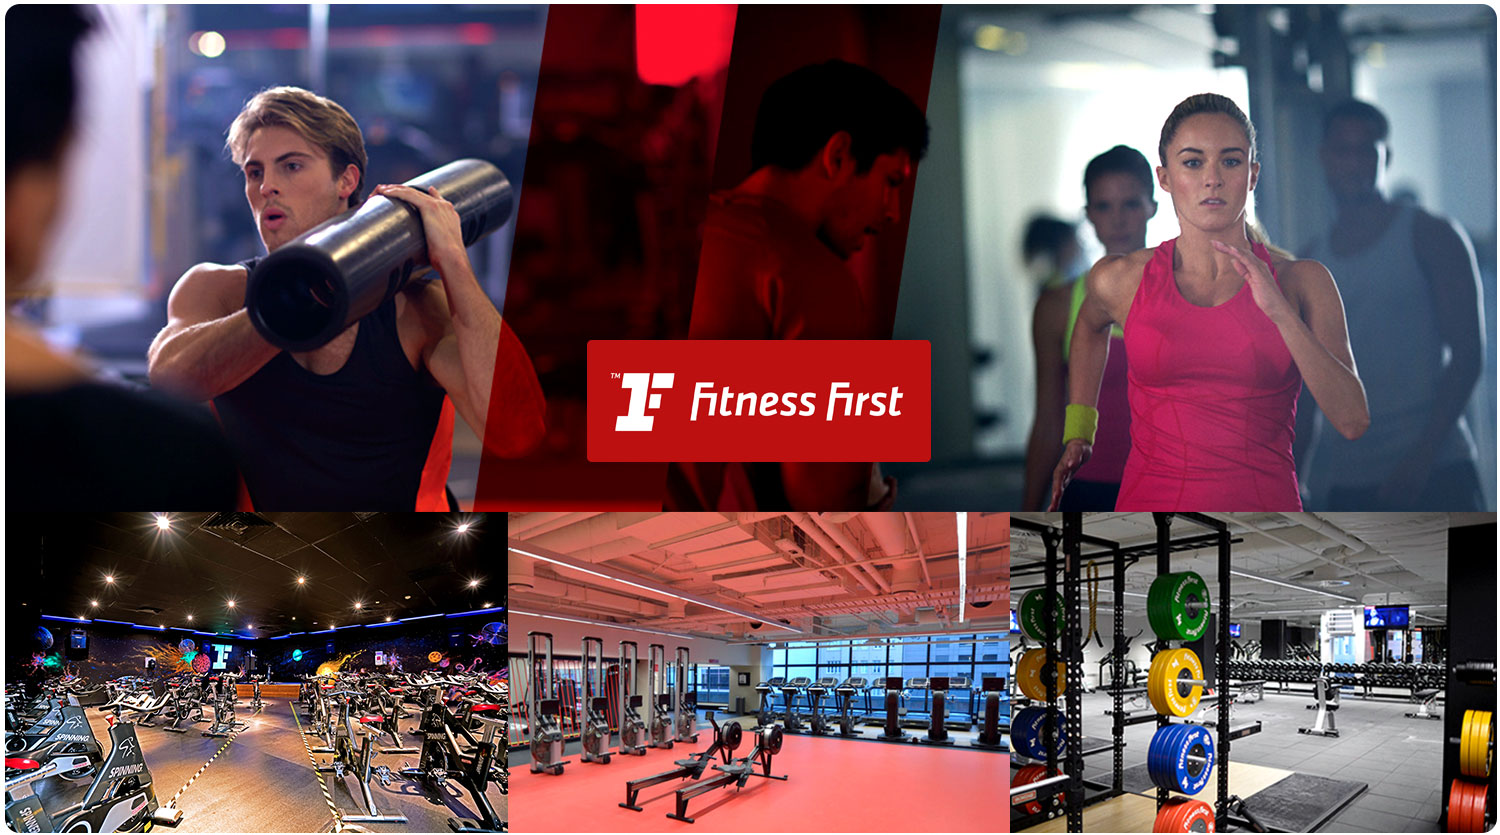 Start your Fitness Journey with Fitness First with only $14.95 for 14 days at Fitness First Cronulla NSW. Experience our first class gym and freestyle classes inc. Pilates, Yoga and more. Take the first step with Fitness First Cronulla NSW.